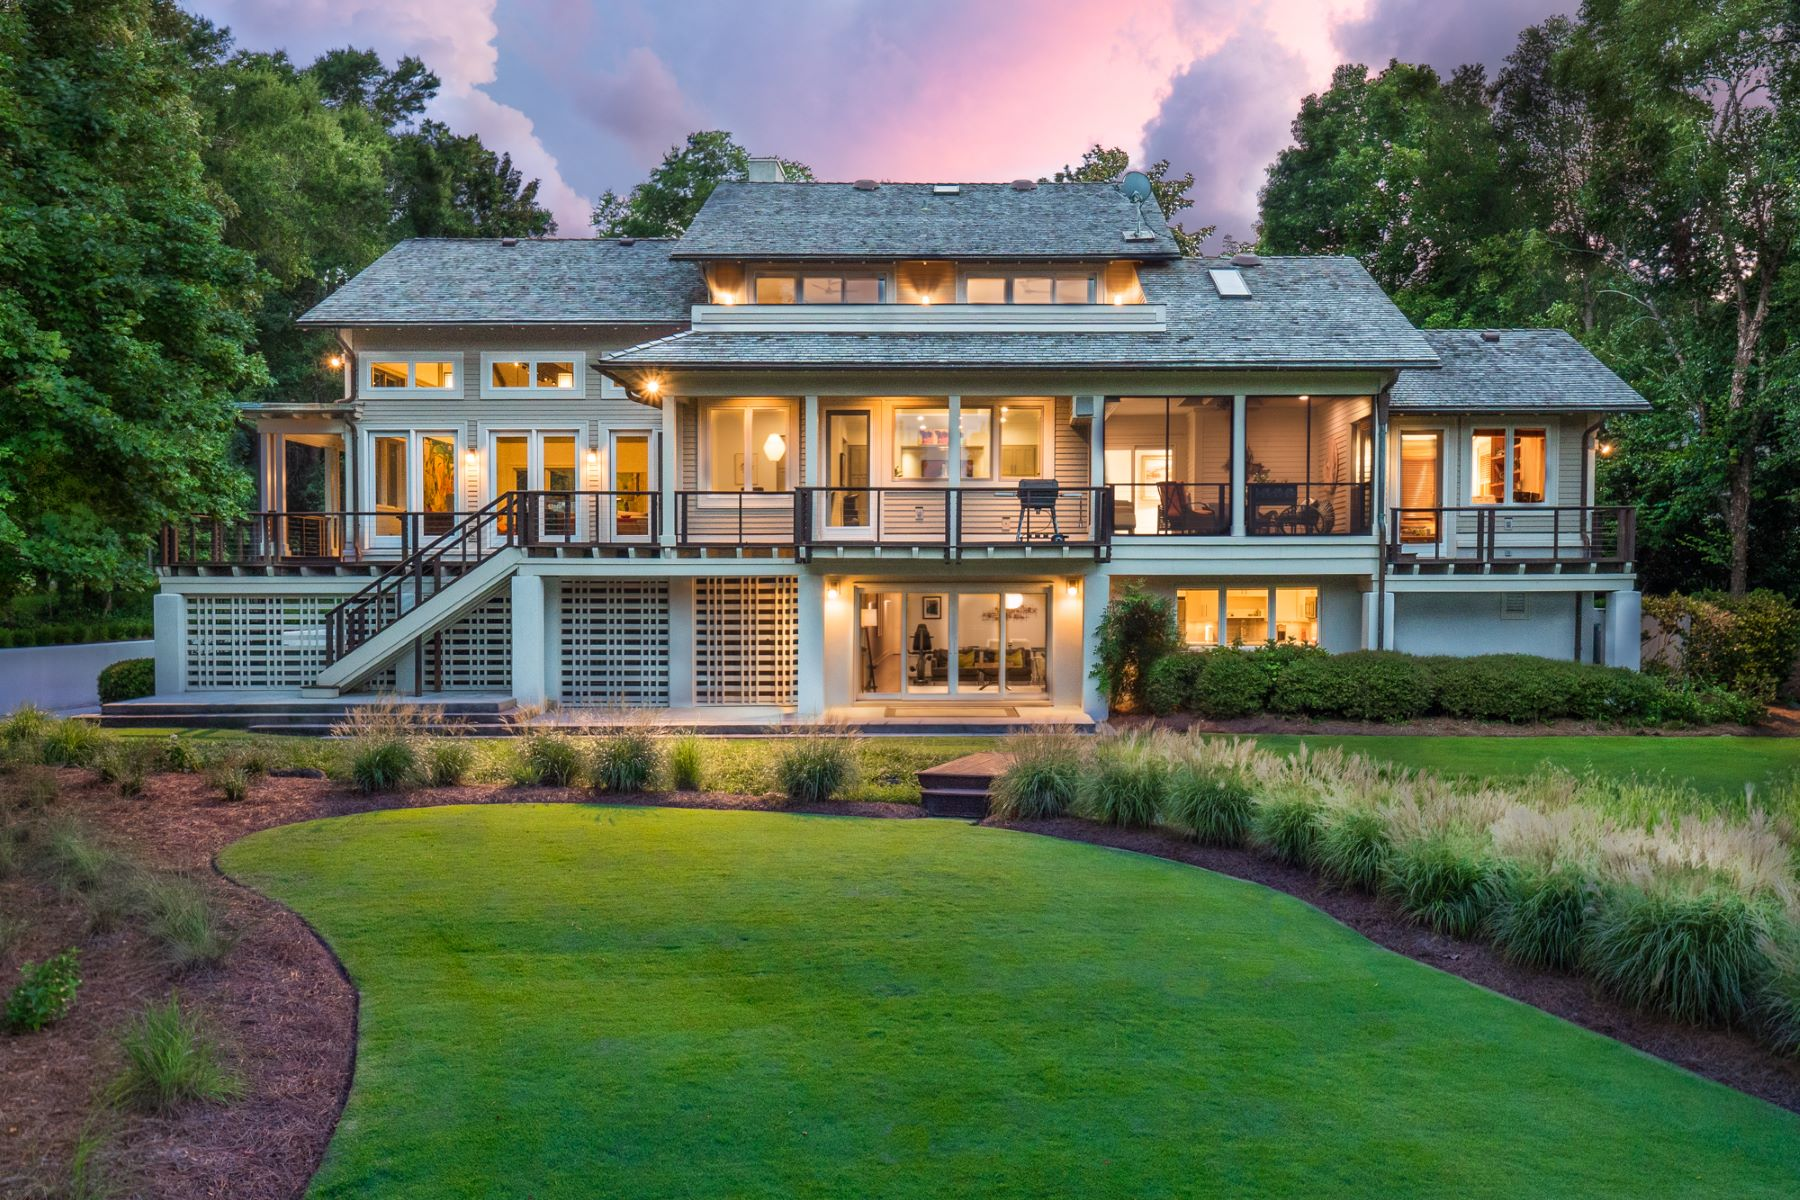 Single Family Home for Active at Modern-Craftsman with Sweeping Water Views 2033 Balmoral Dr. Wilmington, North Carolina 28405 United States